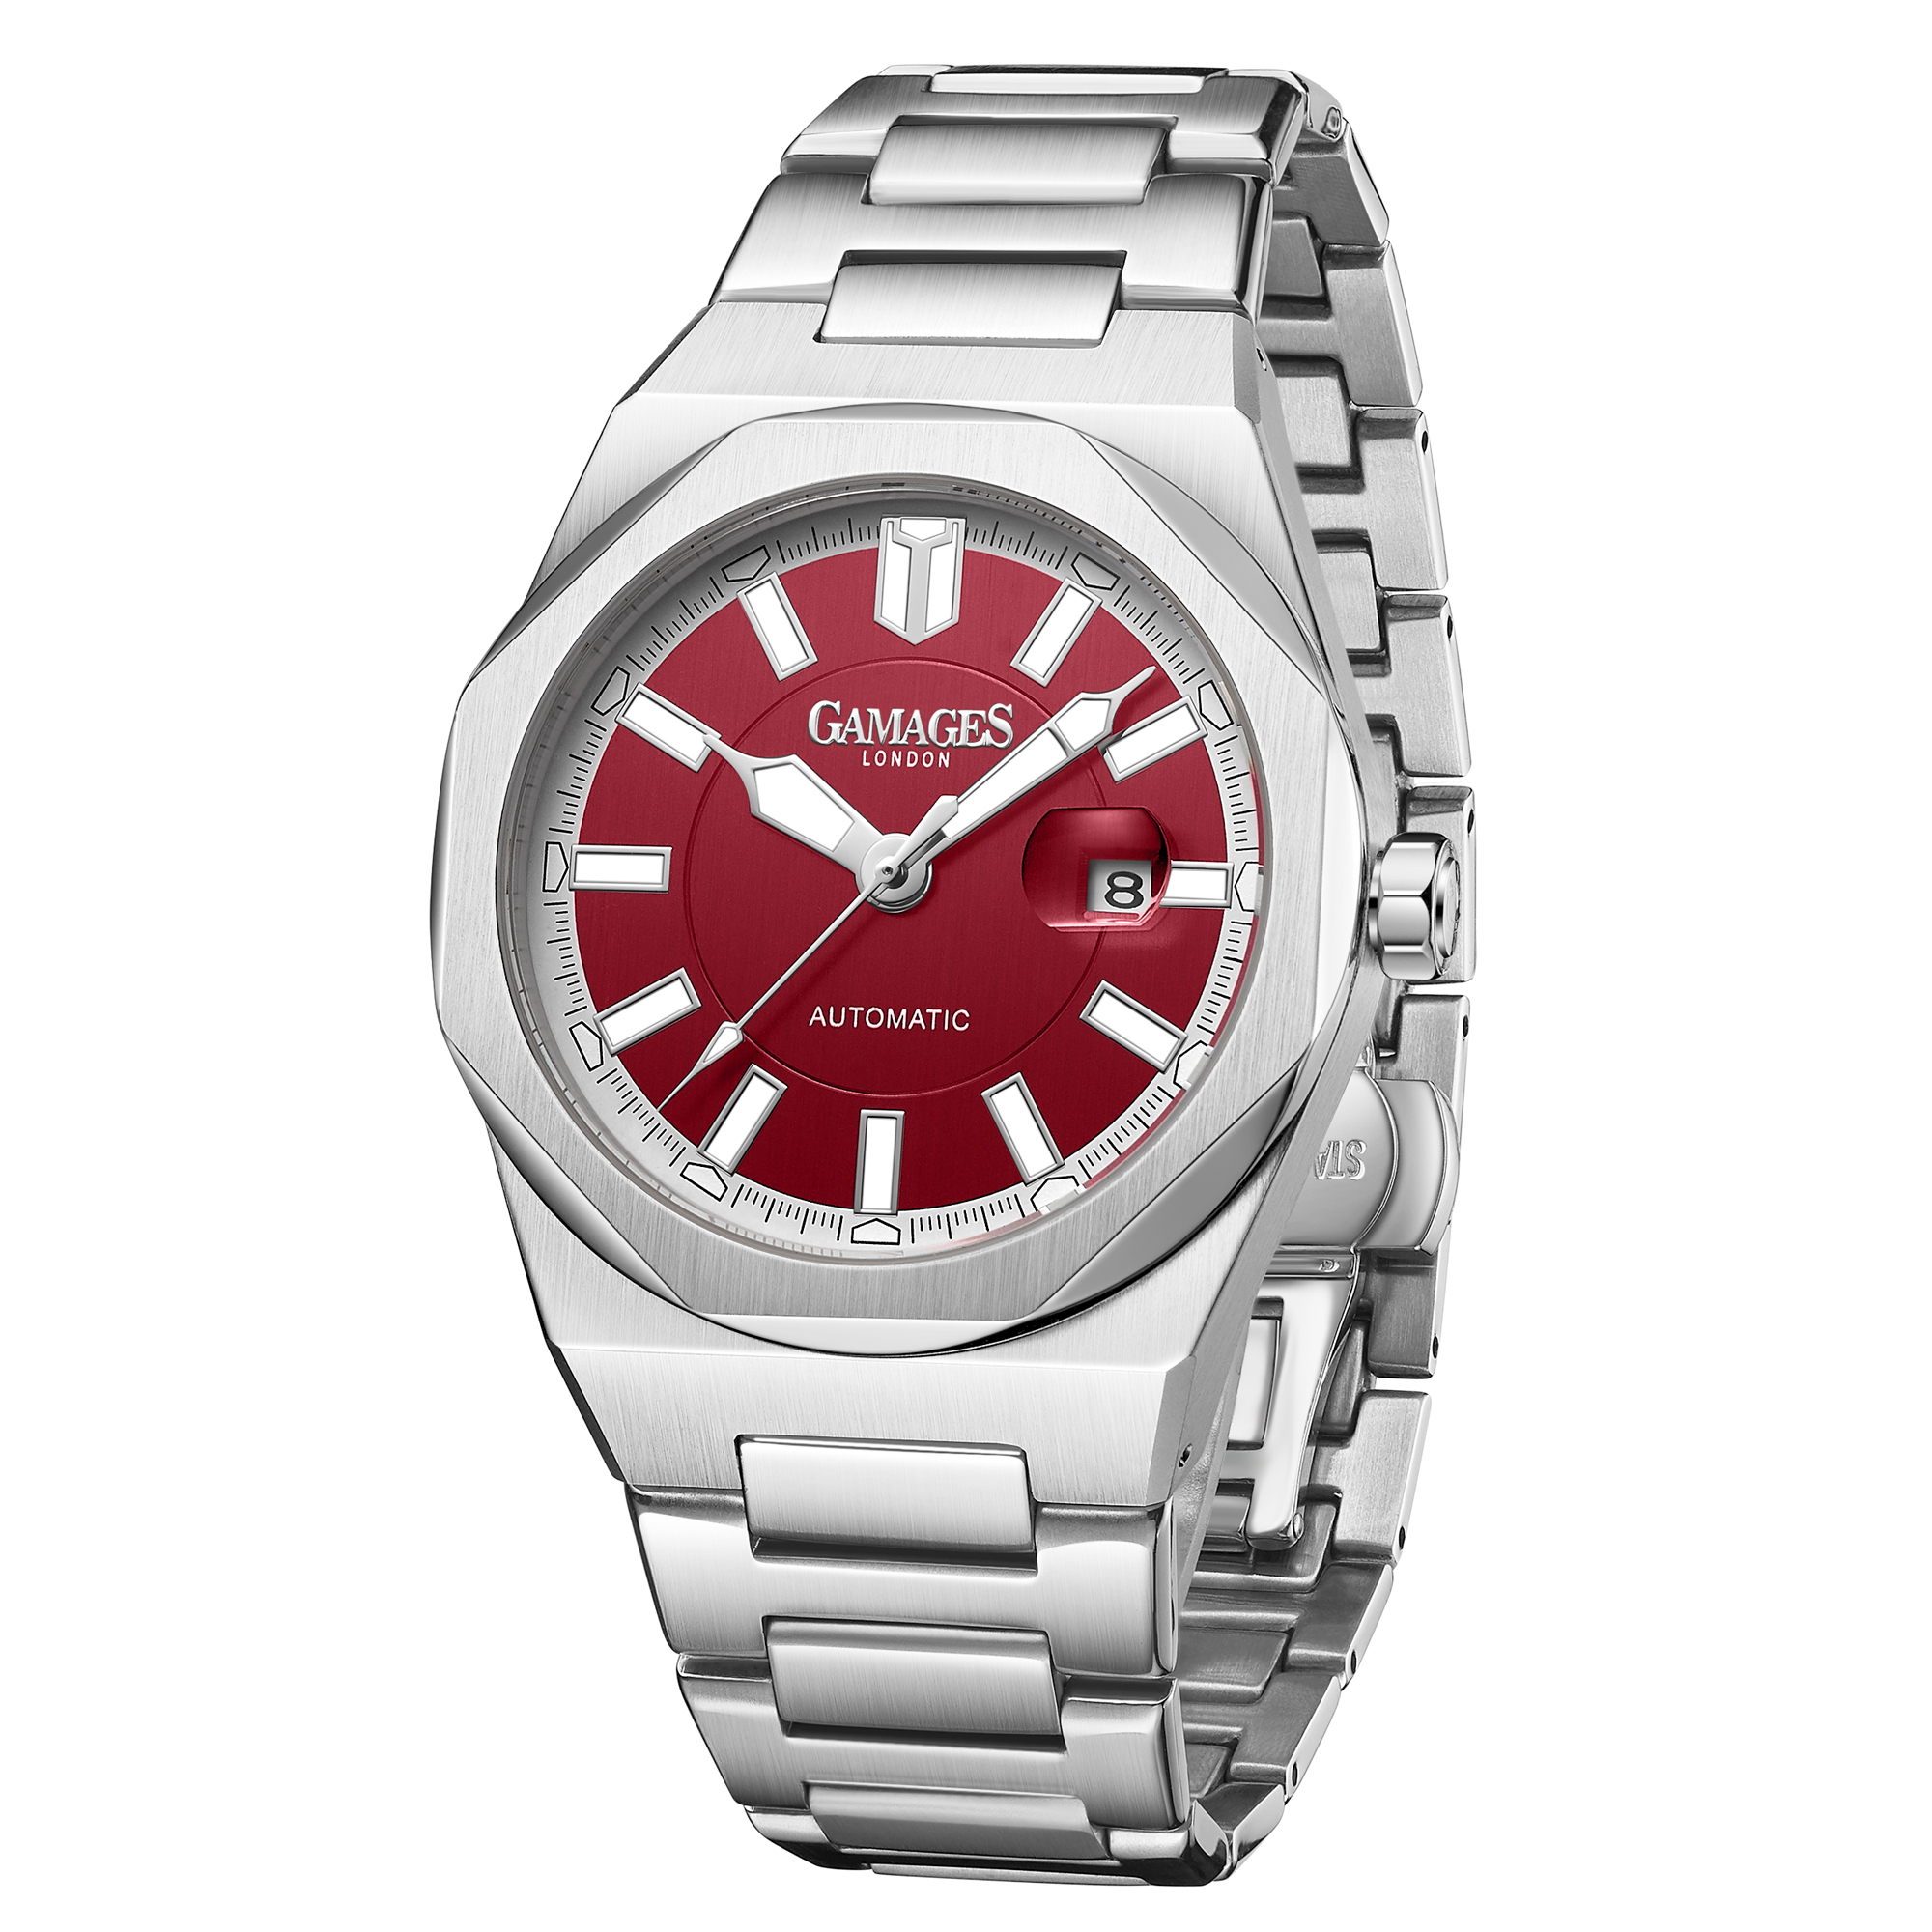 Ltd Edition Hand Assembled Gamages Quintessential Automatic Red – 5 Year Warranty & Free Delivery - Image 5 of 5